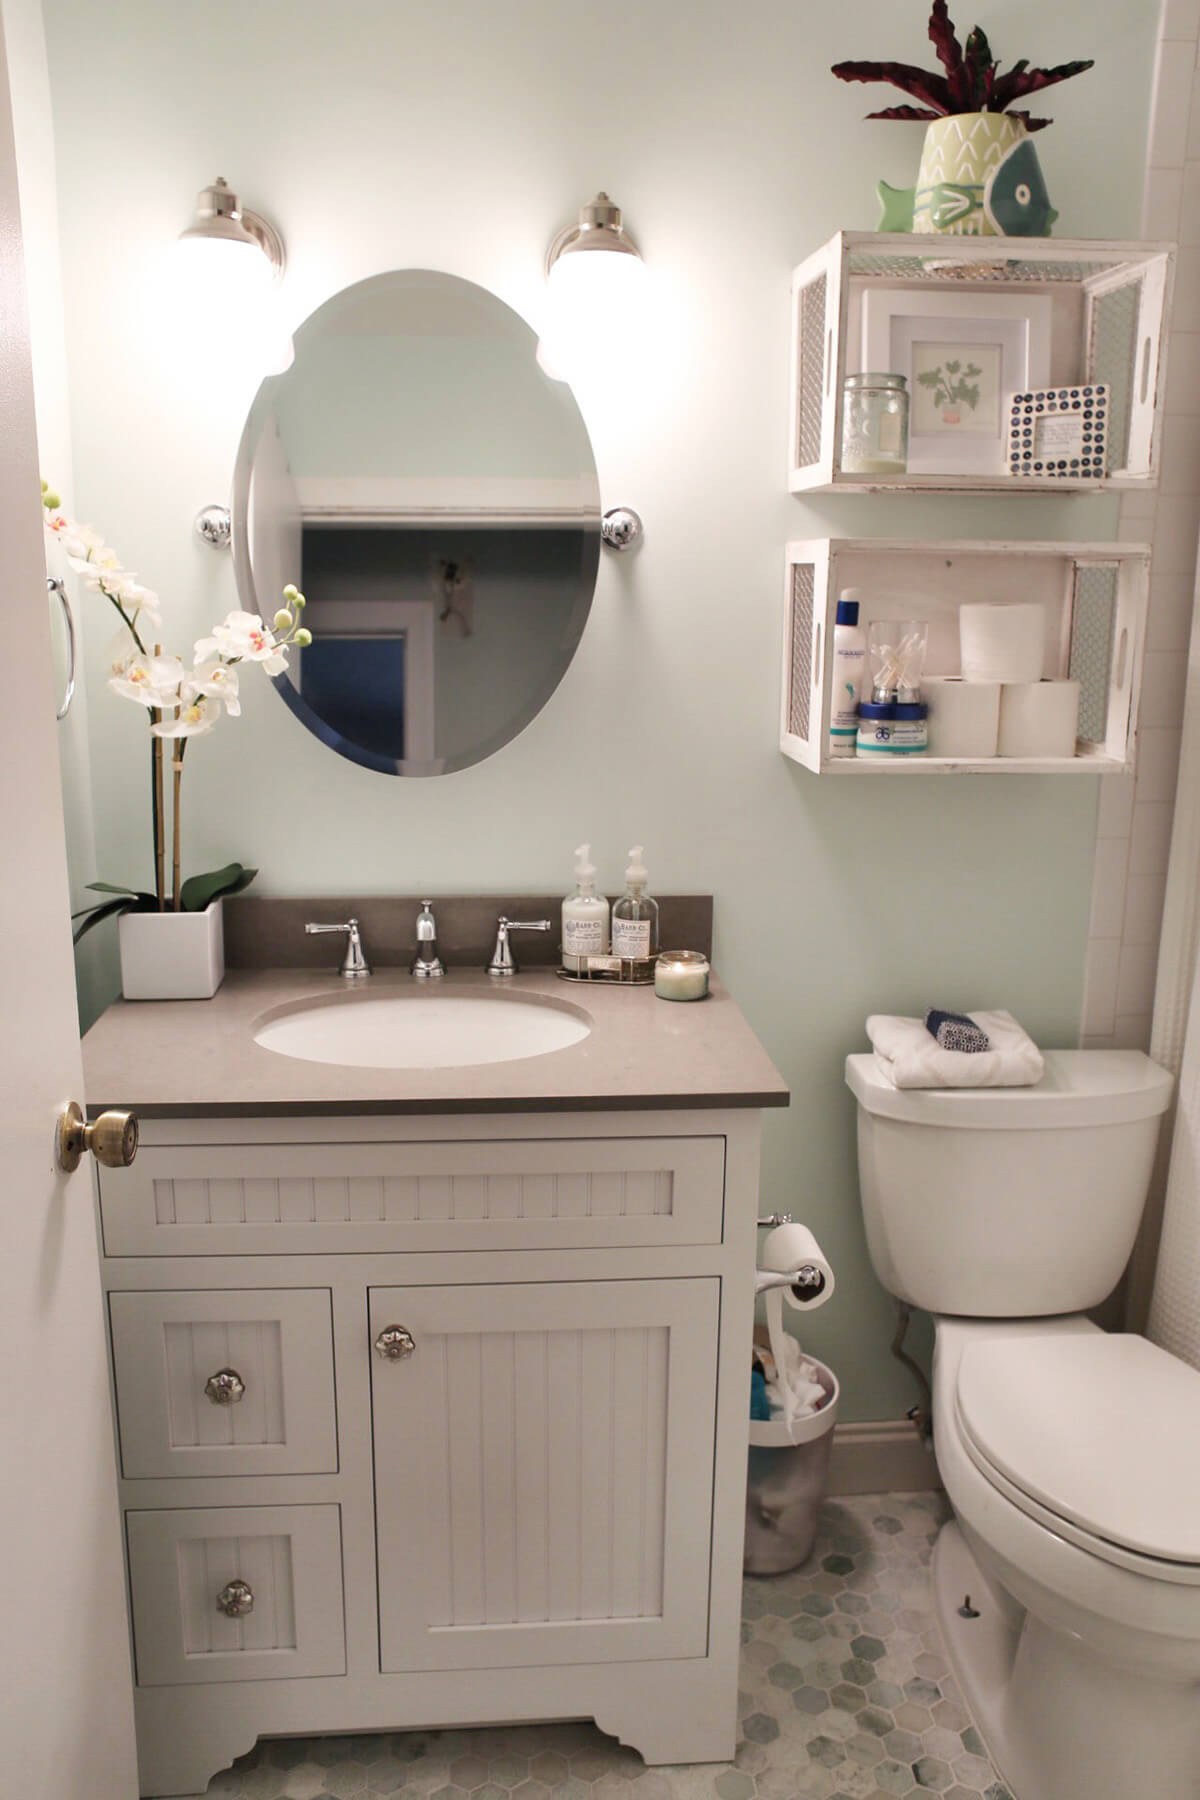 Fullsize Of Bathroom Shelves And Storage